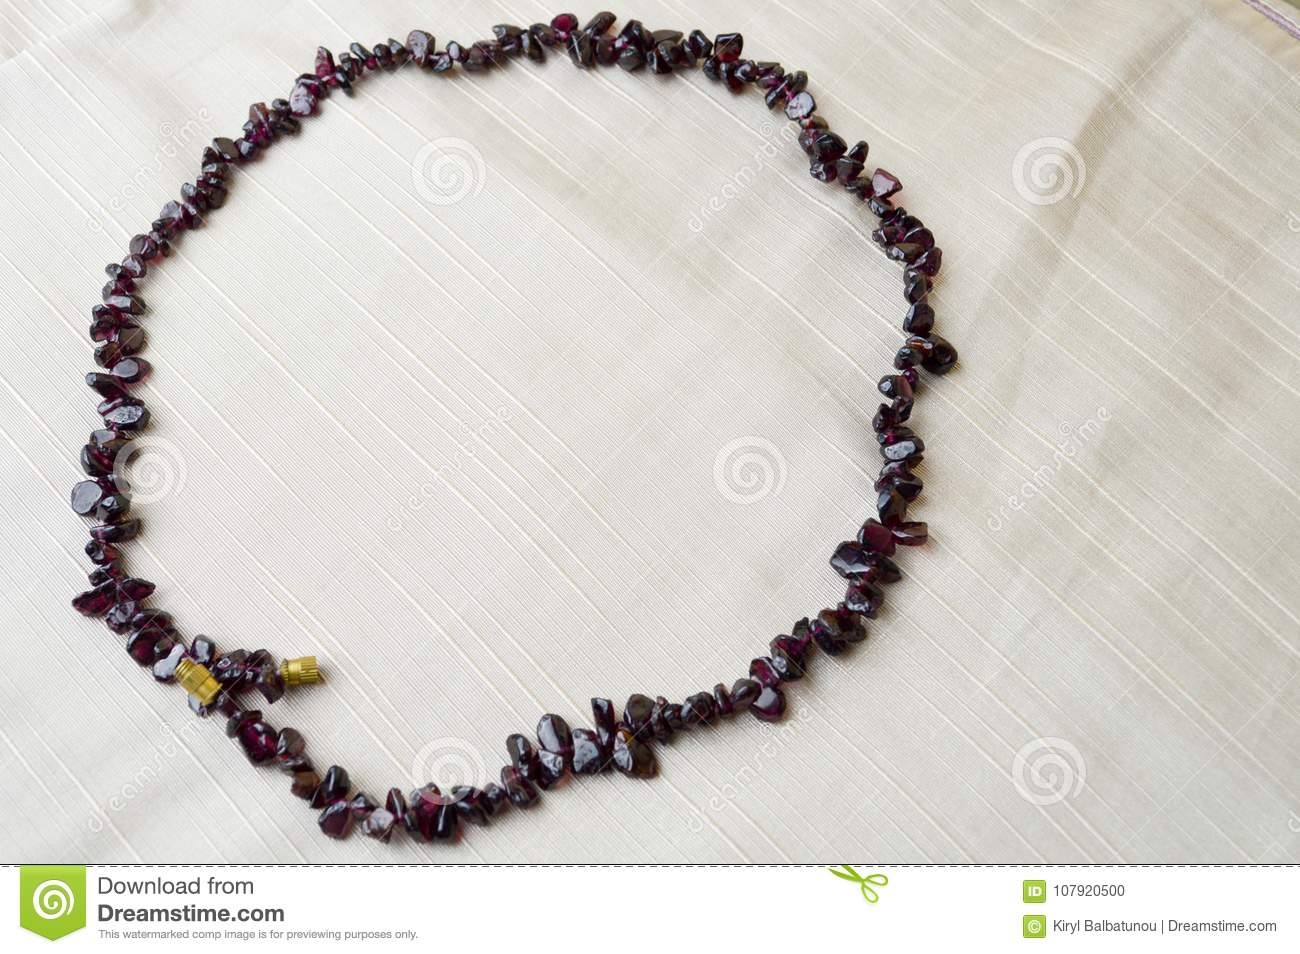 The circle is made of female beautiful beads, necklaces of brown dark stones, amber with a background of beige fabric